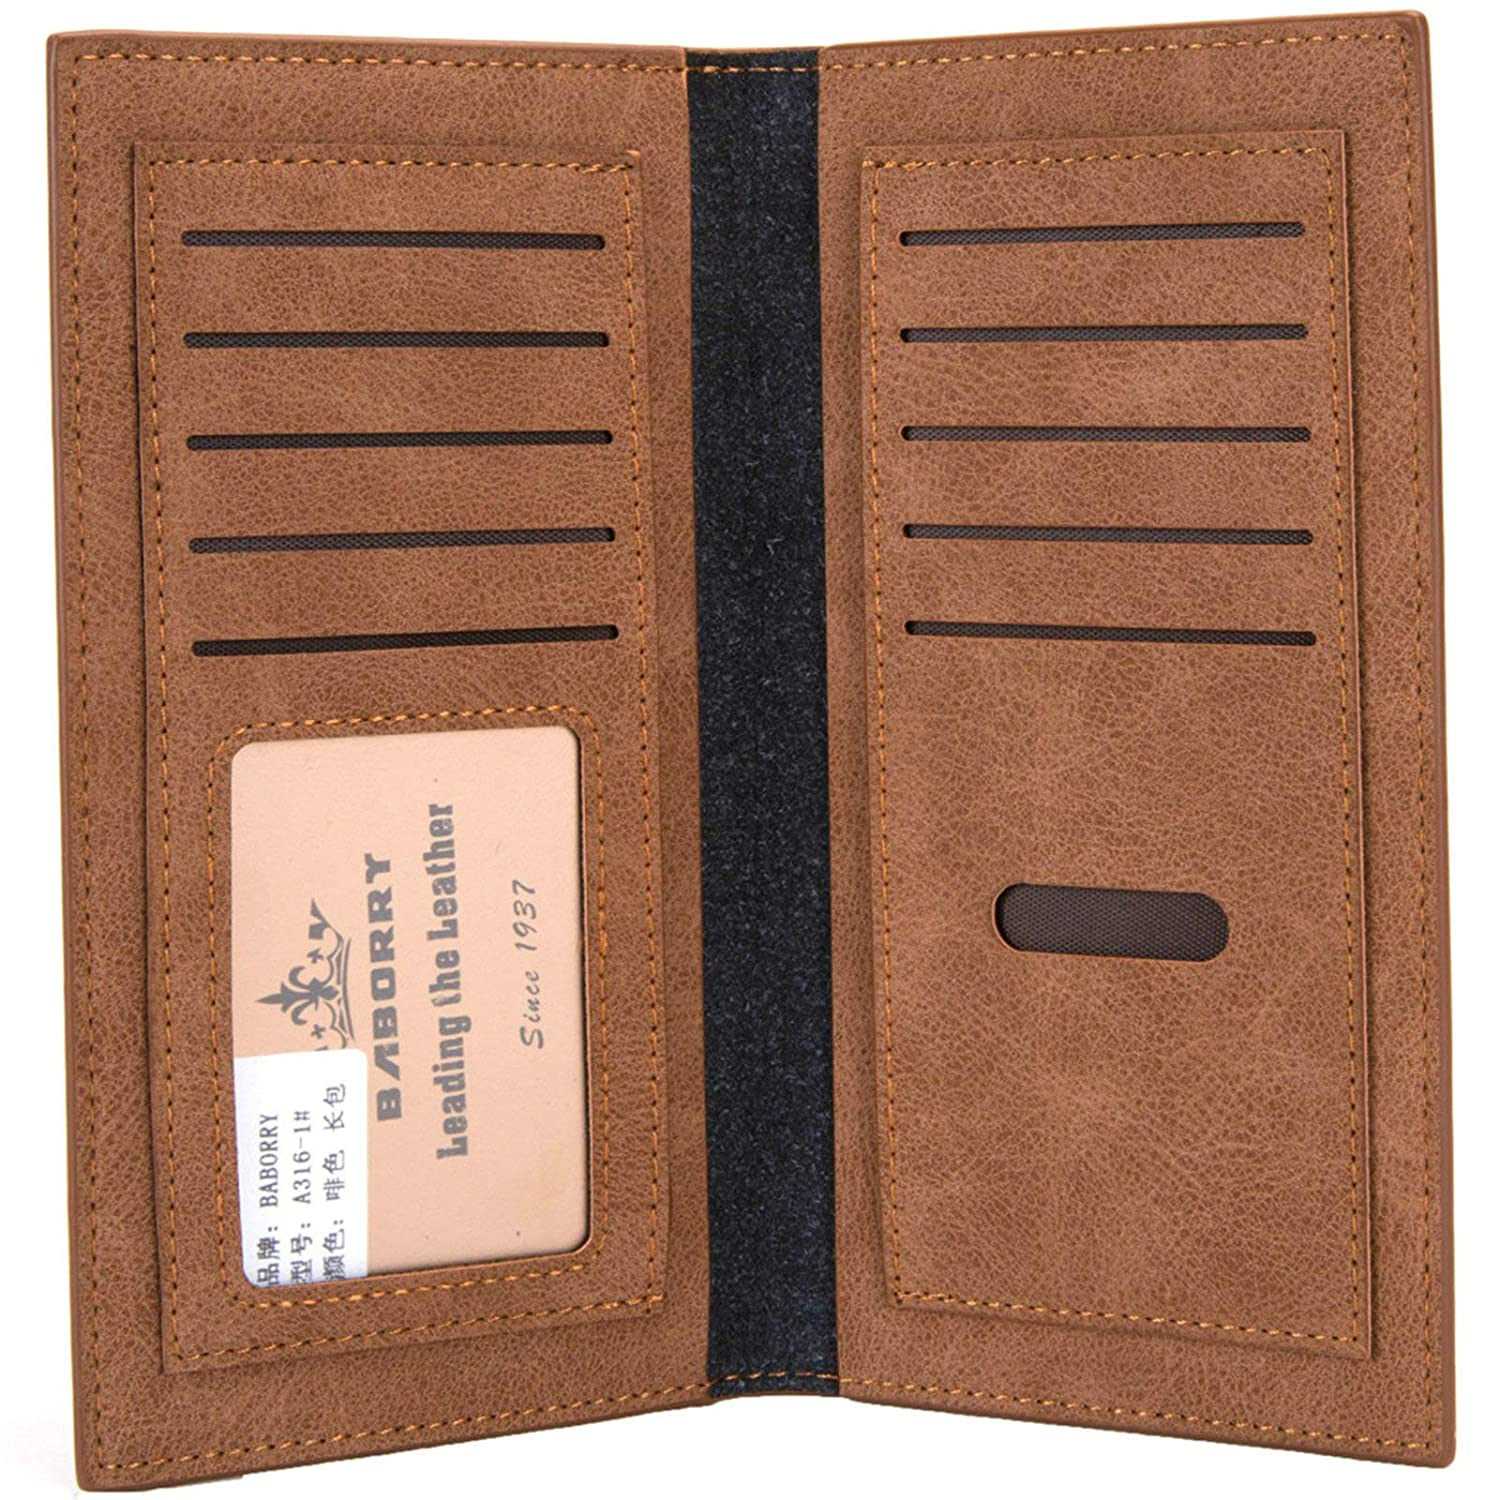 EoCot Mens Vintage Leather Long Wallets Bifold Wallet Nulti Card Holder with Photo Window